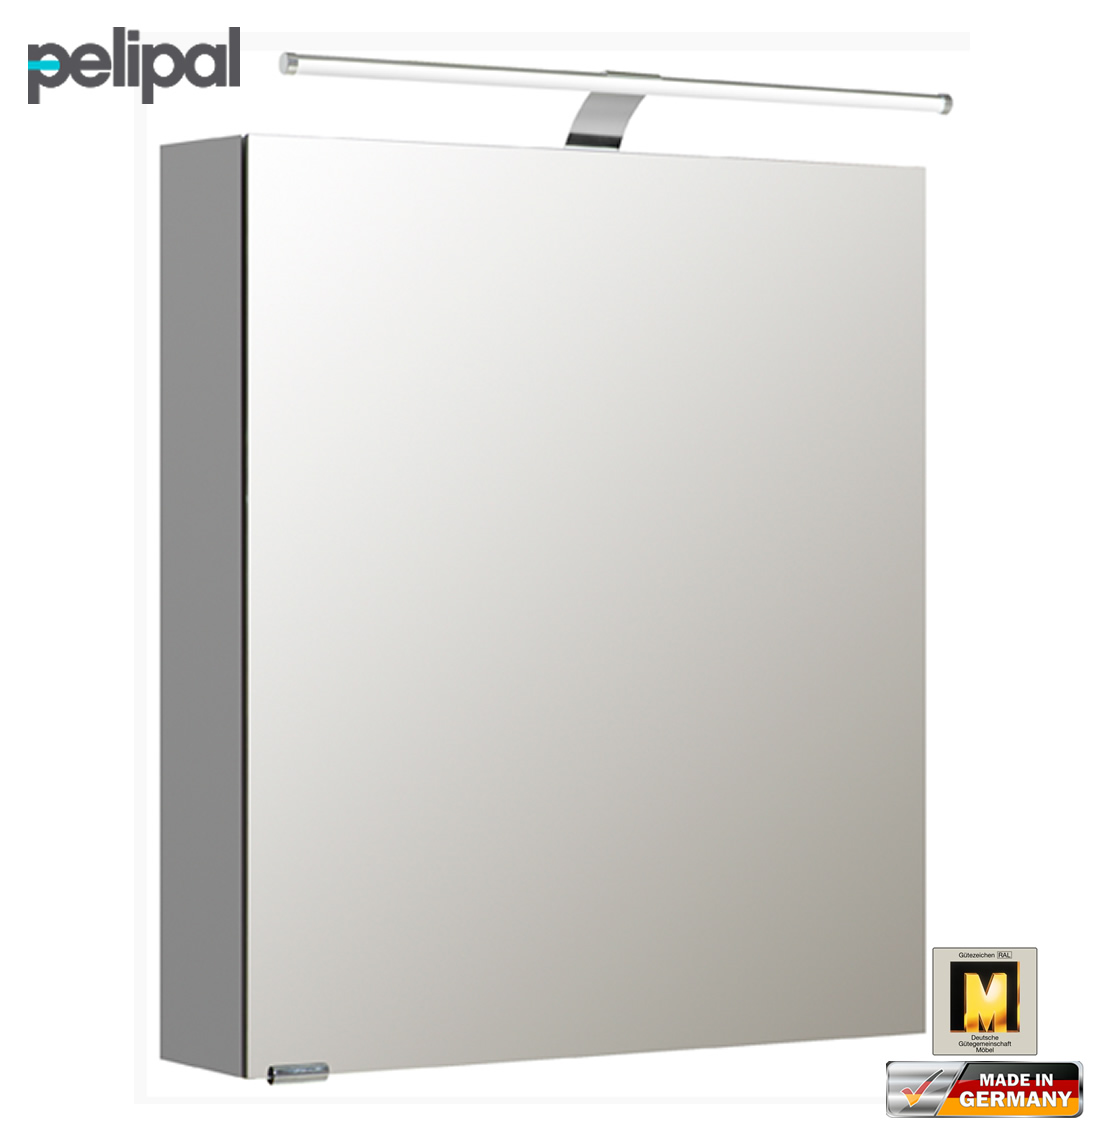 pelipal neutraler spiegelschrank 60 cm mit led. Black Bedroom Furniture Sets. Home Design Ideas